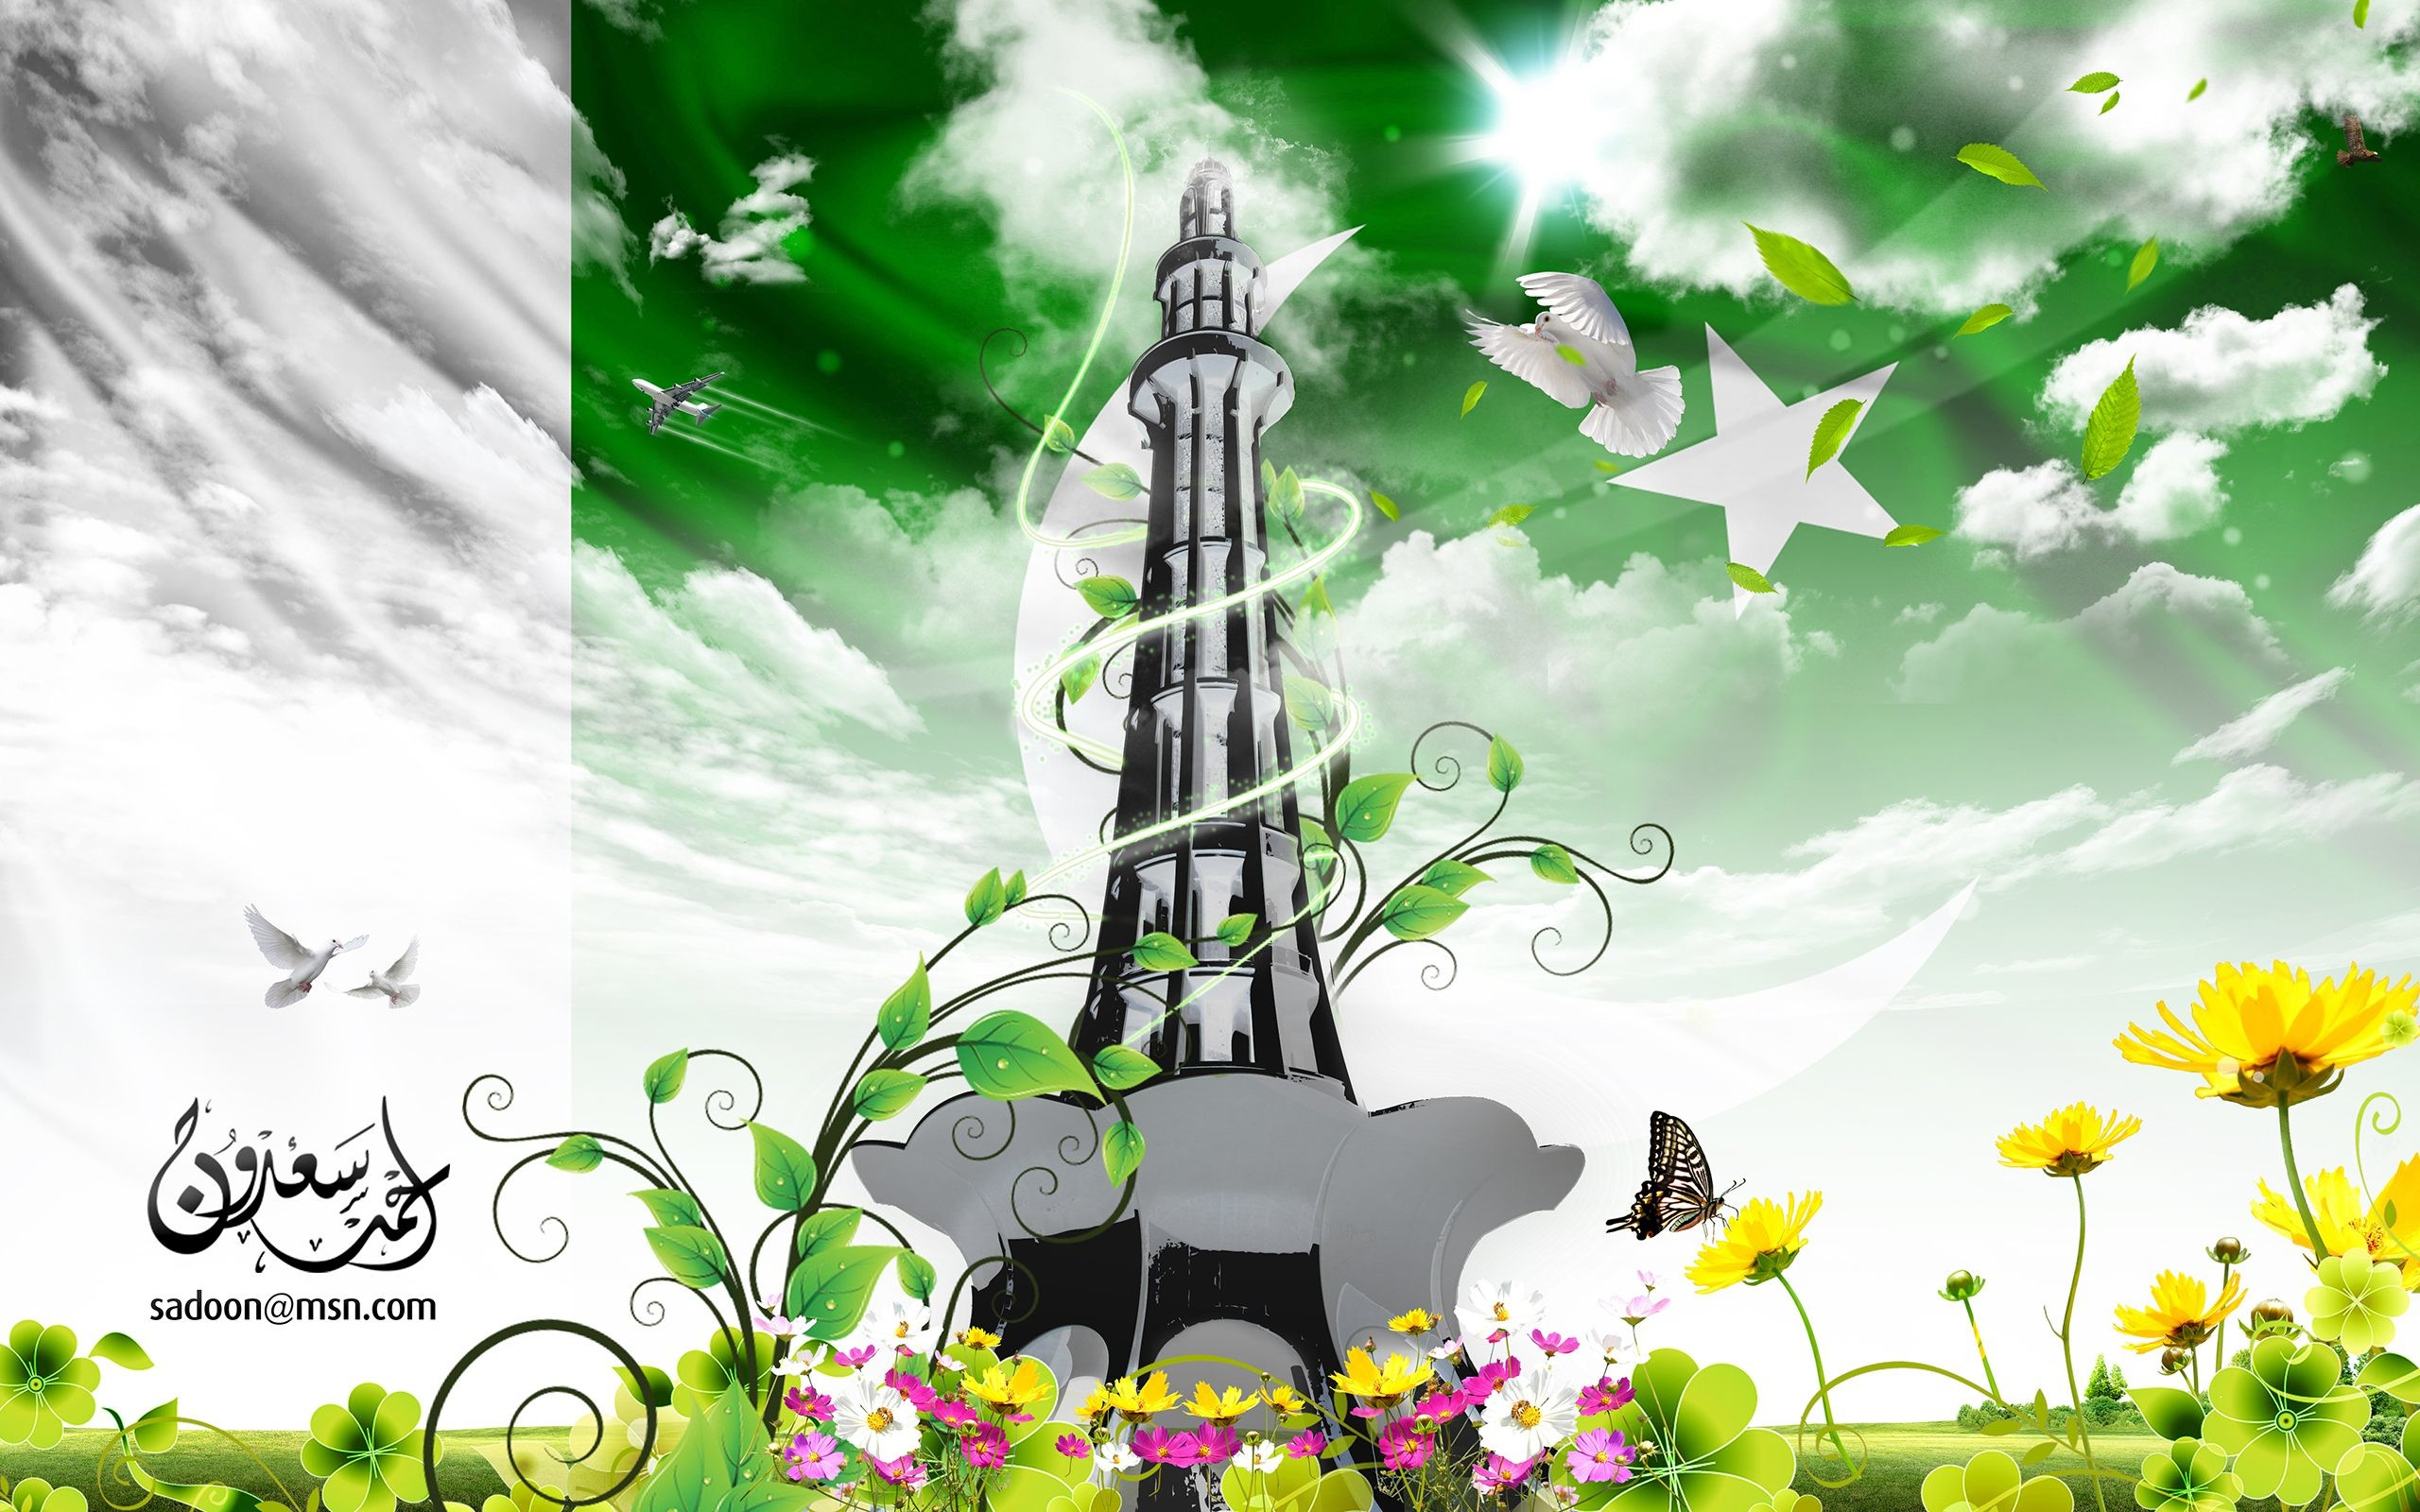 Res: 2560x1600, Desktop For Pakistan Zindabad Baby With Flag Hd Wallpaper Pics